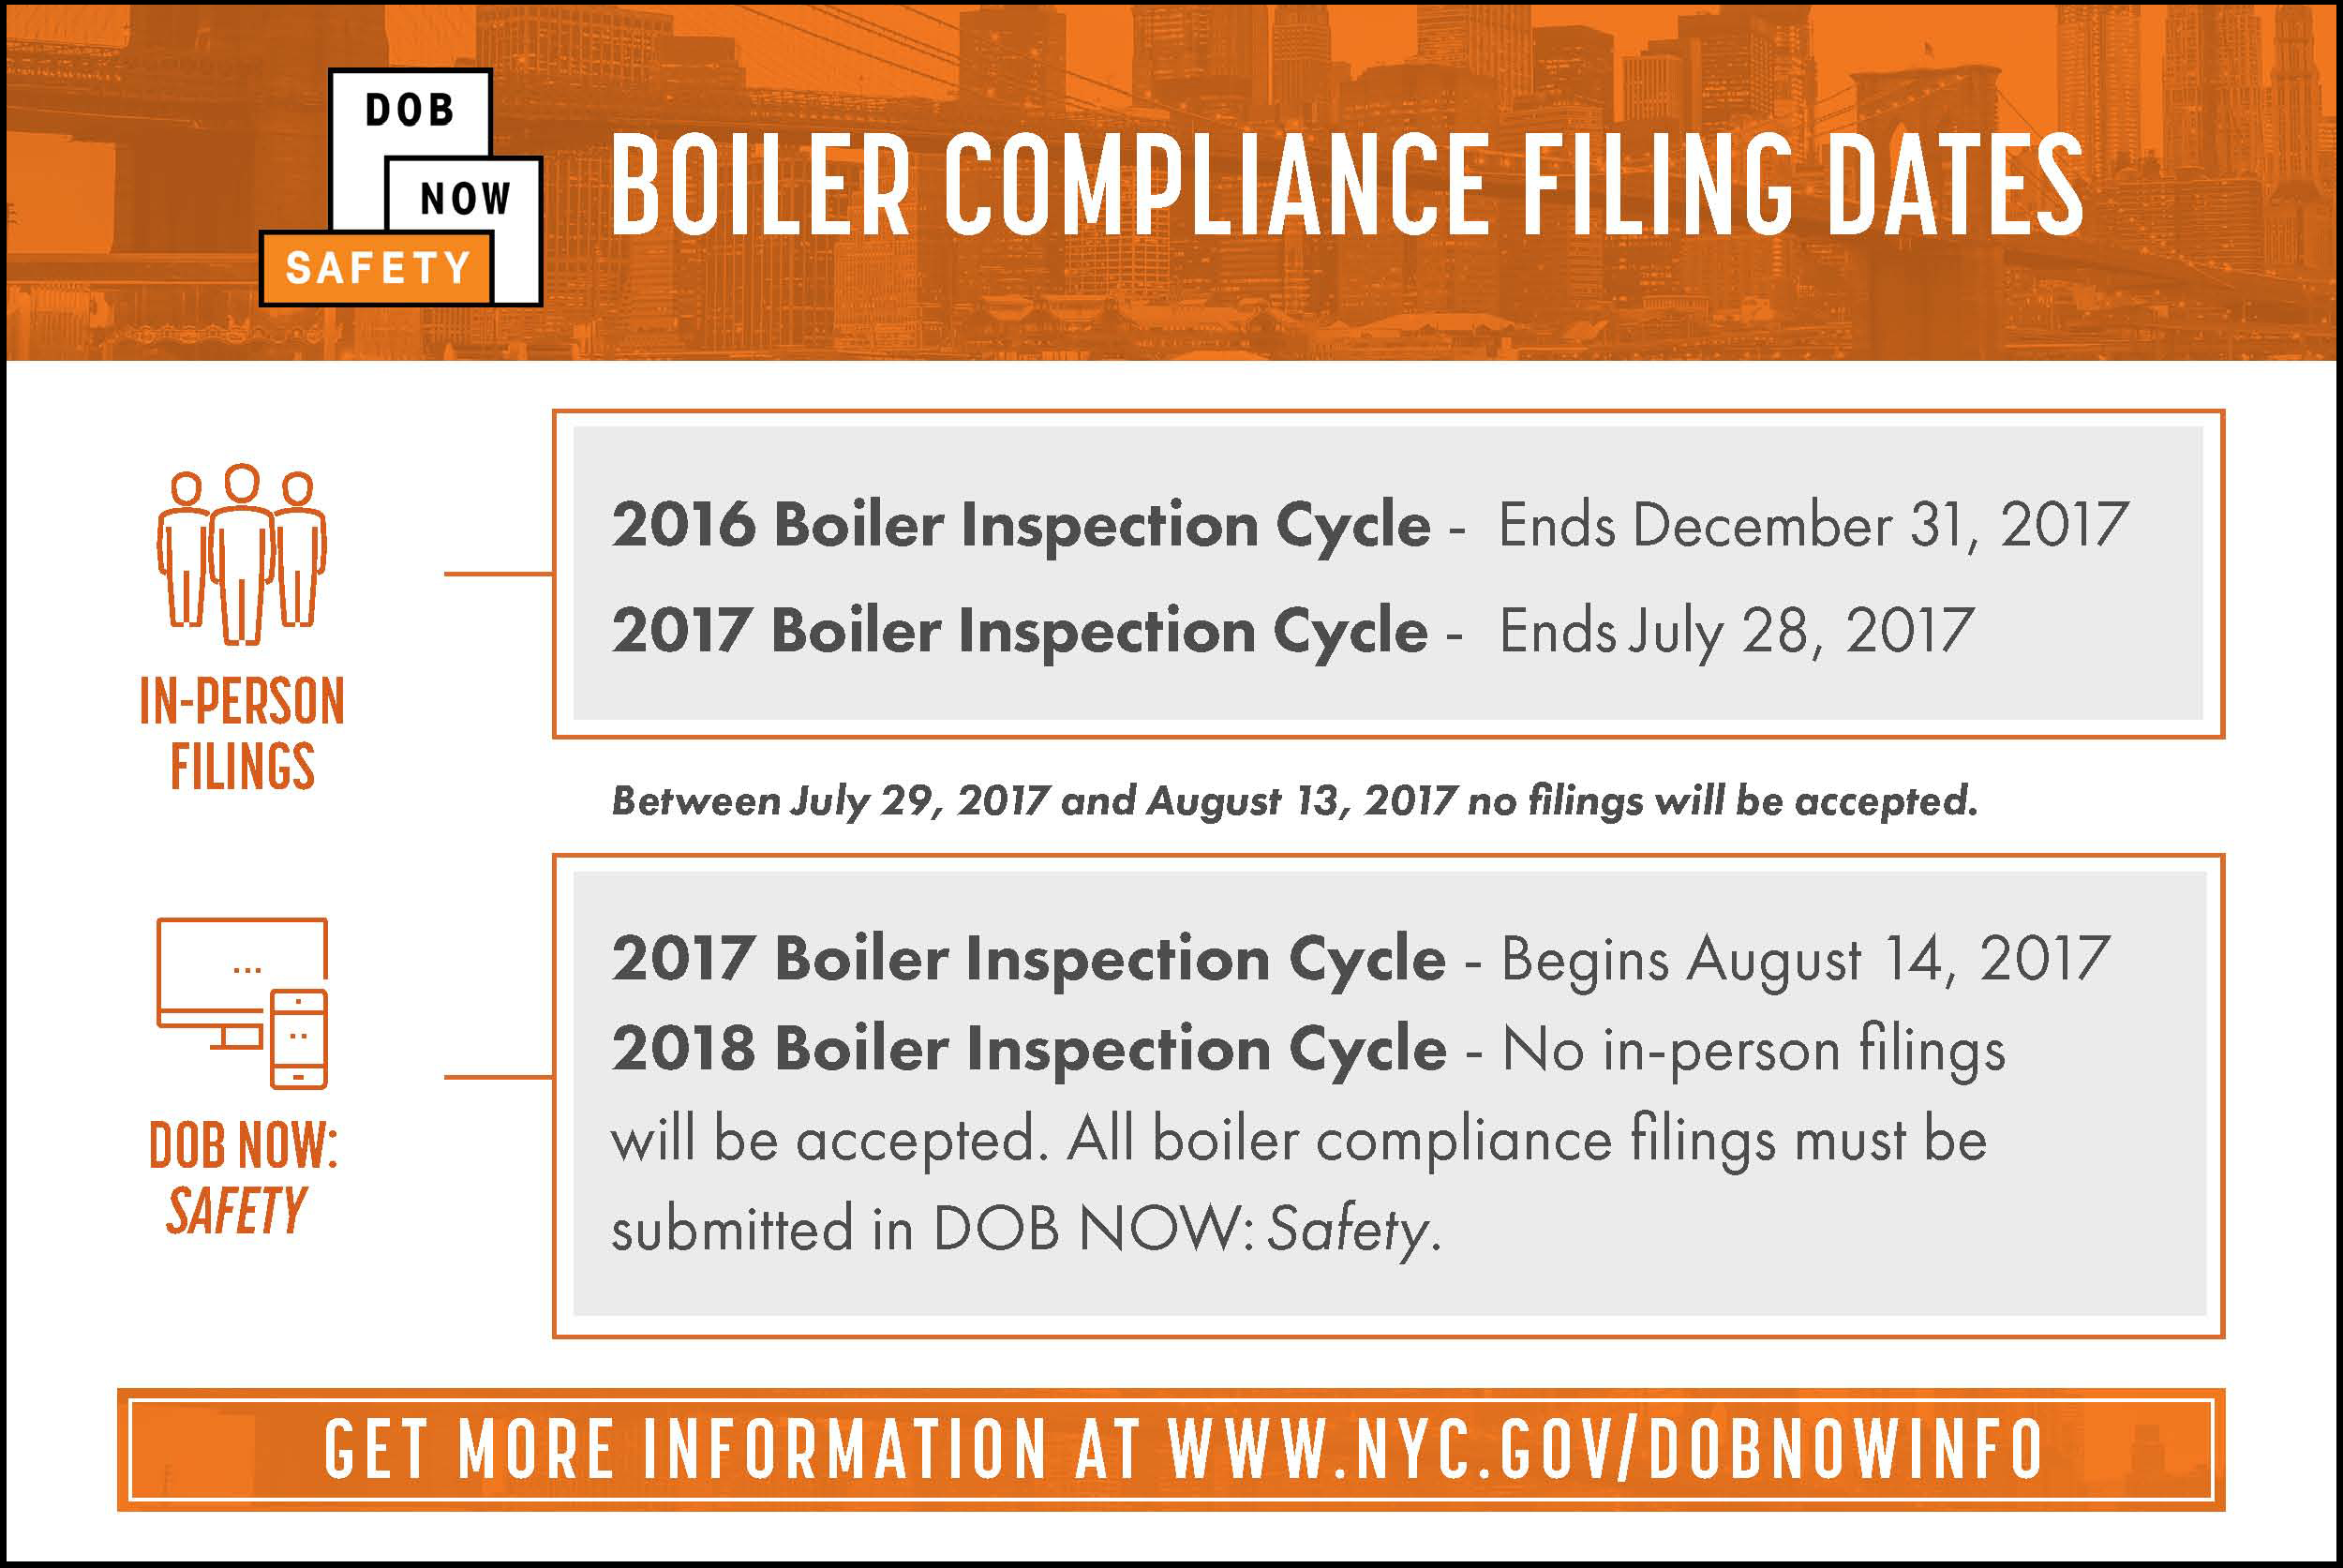 DOB NOW: Safety - Boiler